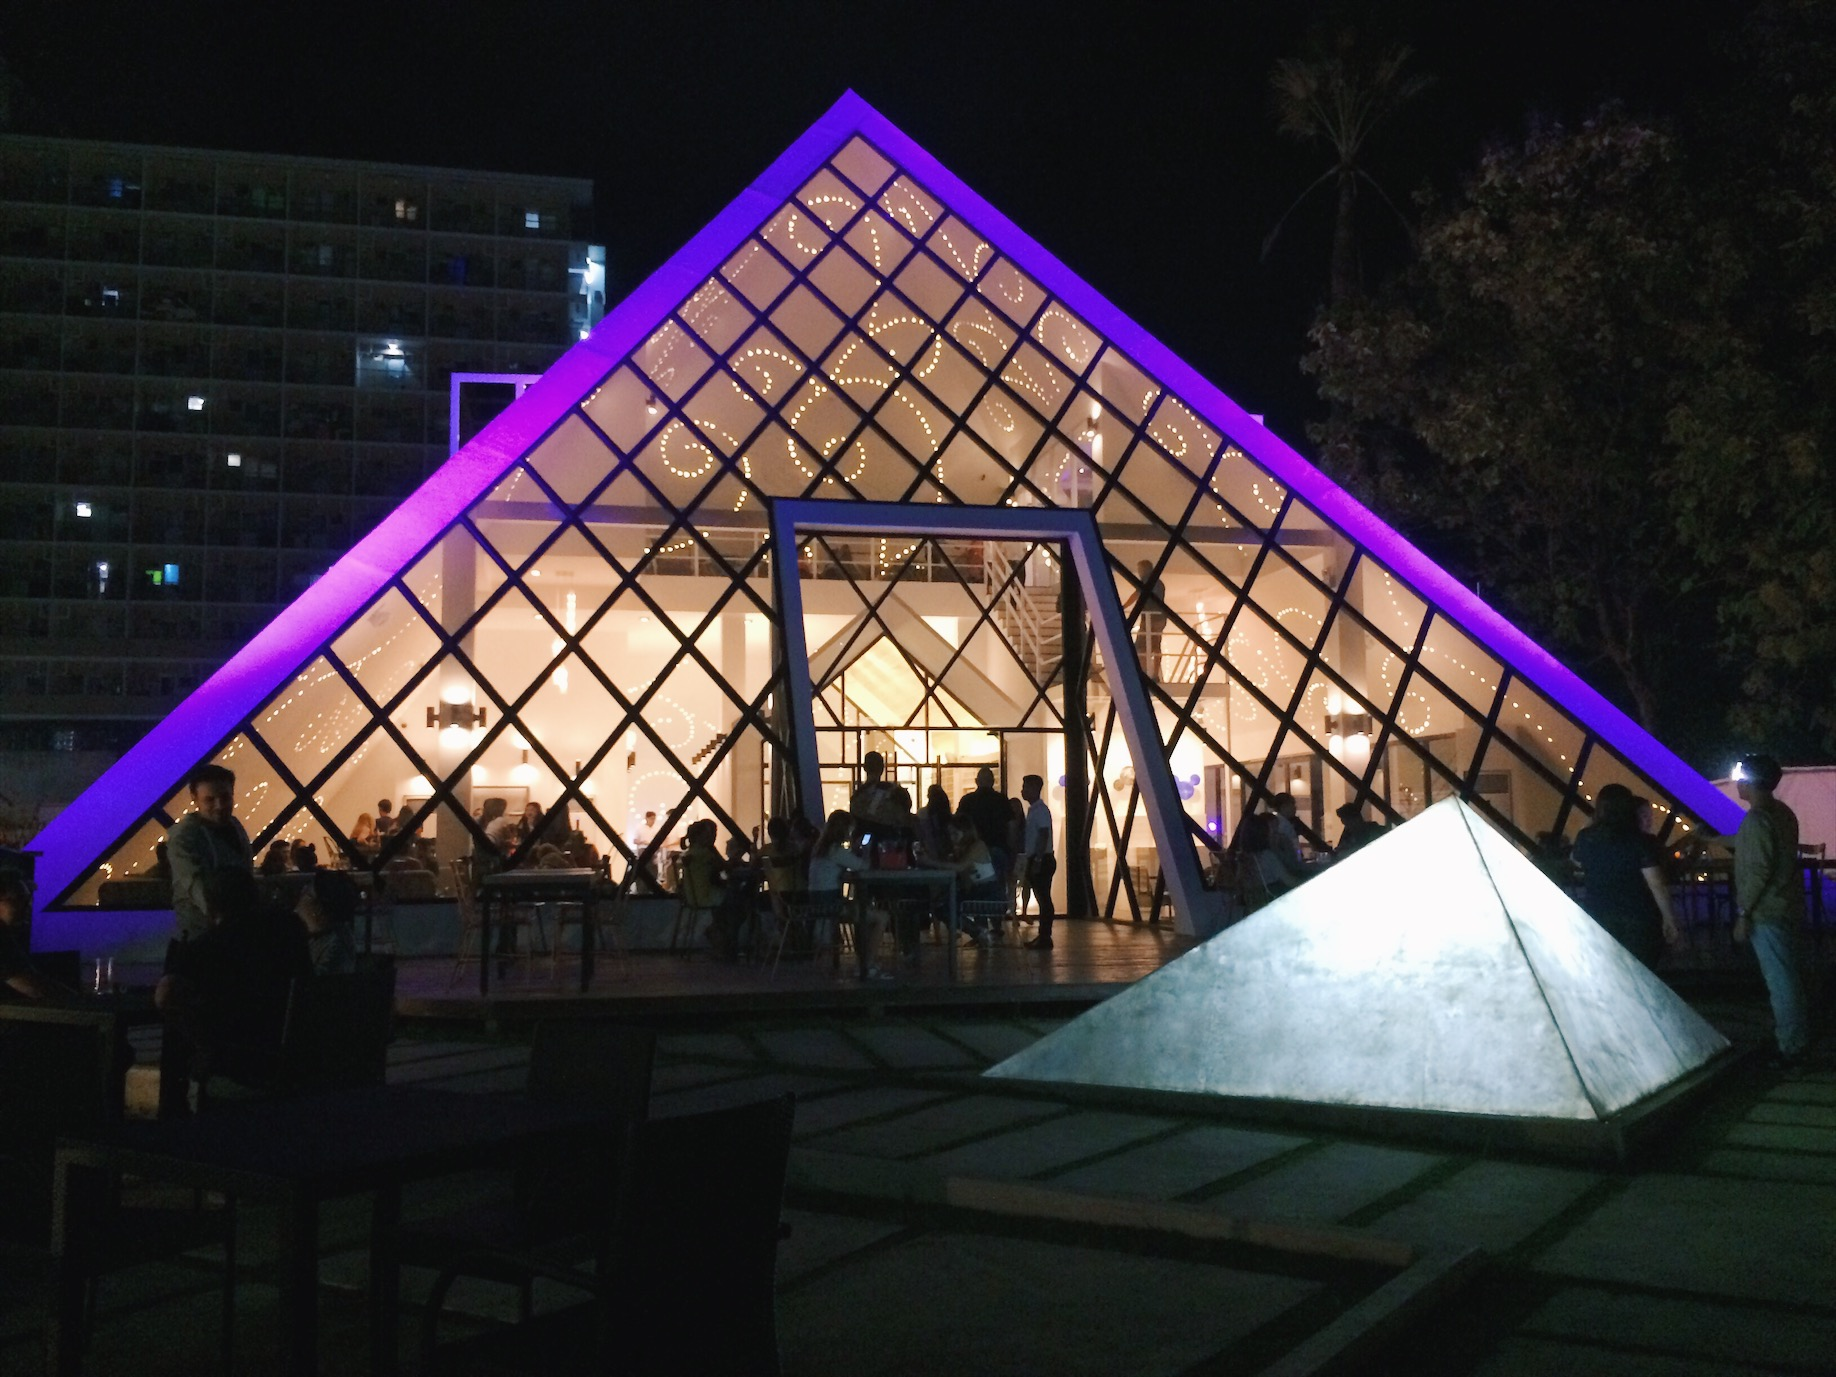 The Pyramid Cebu opening